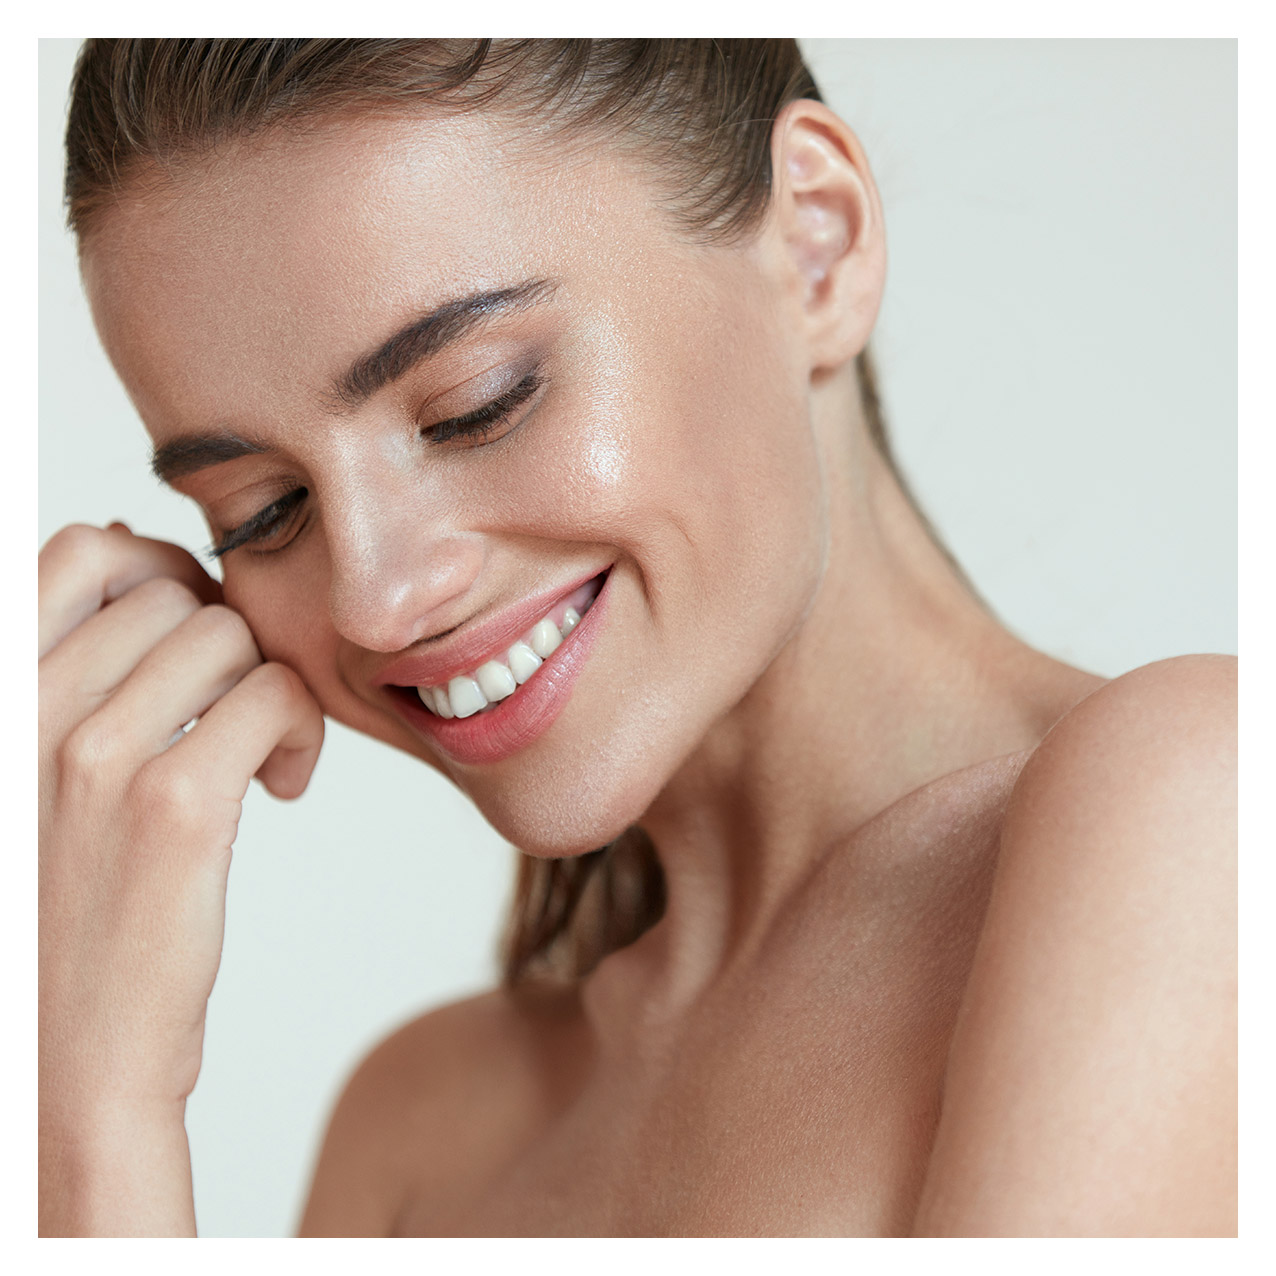 Results-oriented beauty & wellness center - Offering you premium skin care, waxing, and lash services.